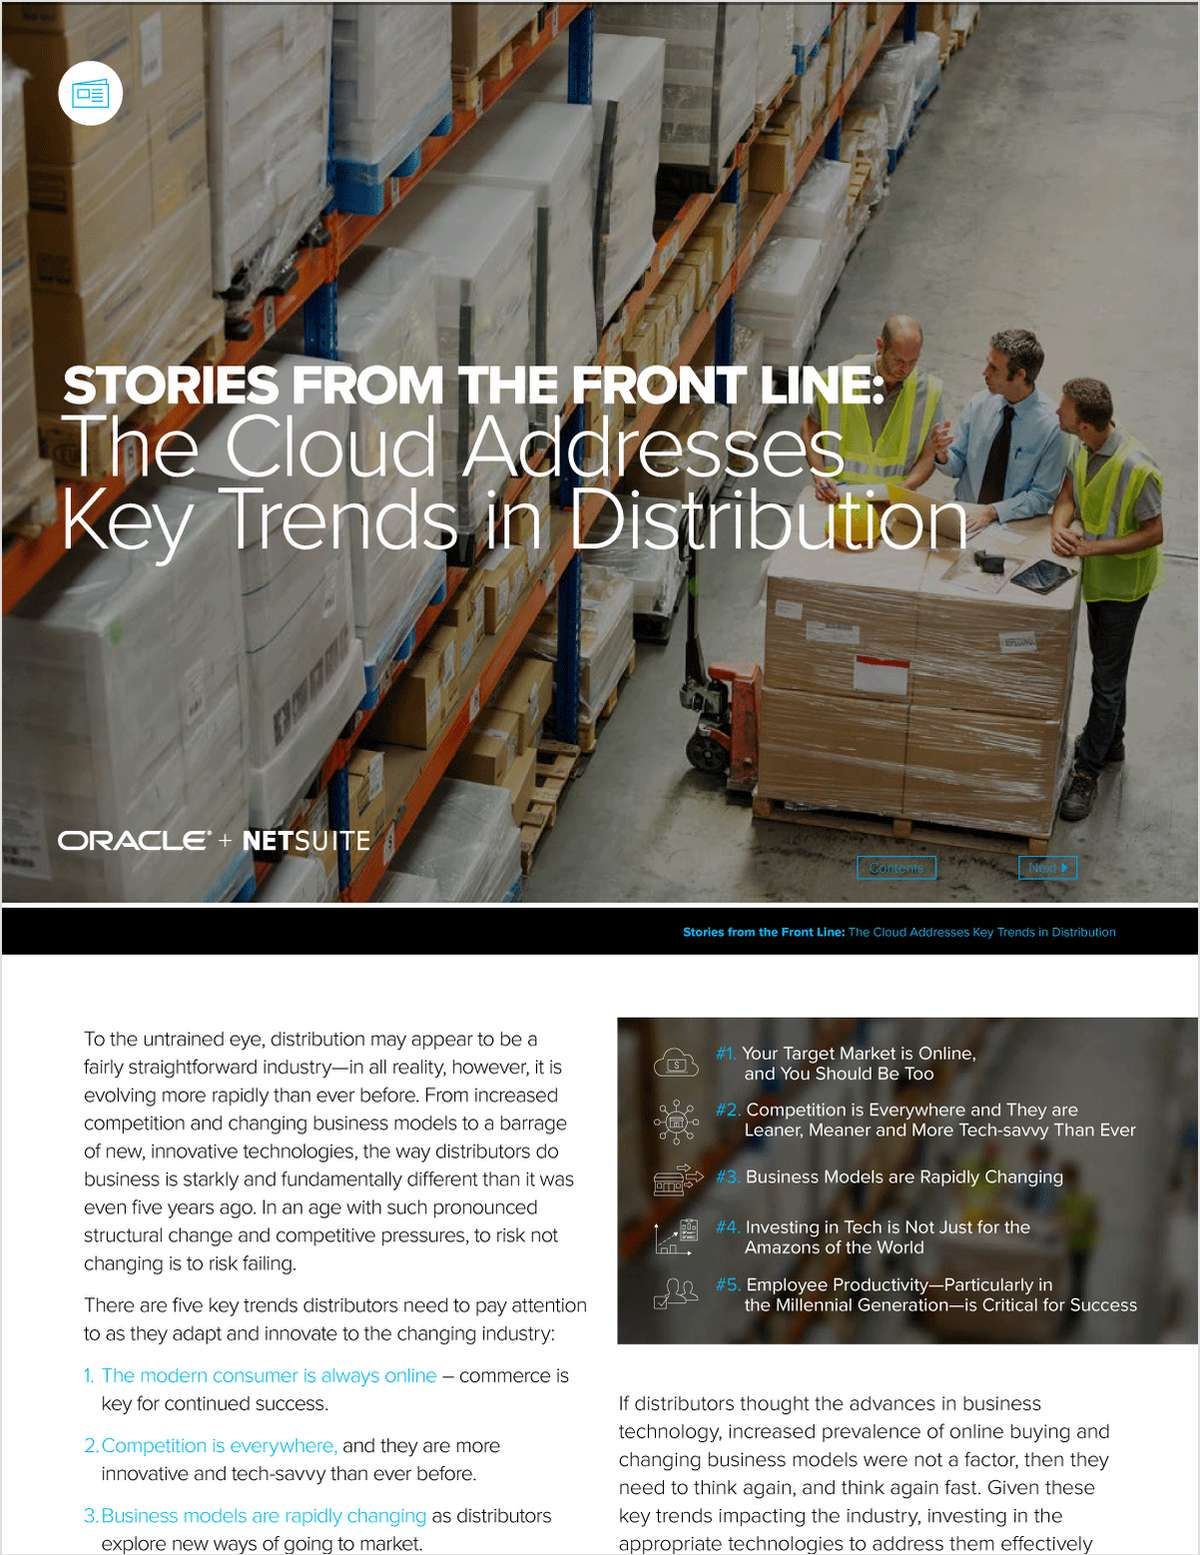 Stories from the Front Line: The Cloud Addresses Key Trends in Distribution